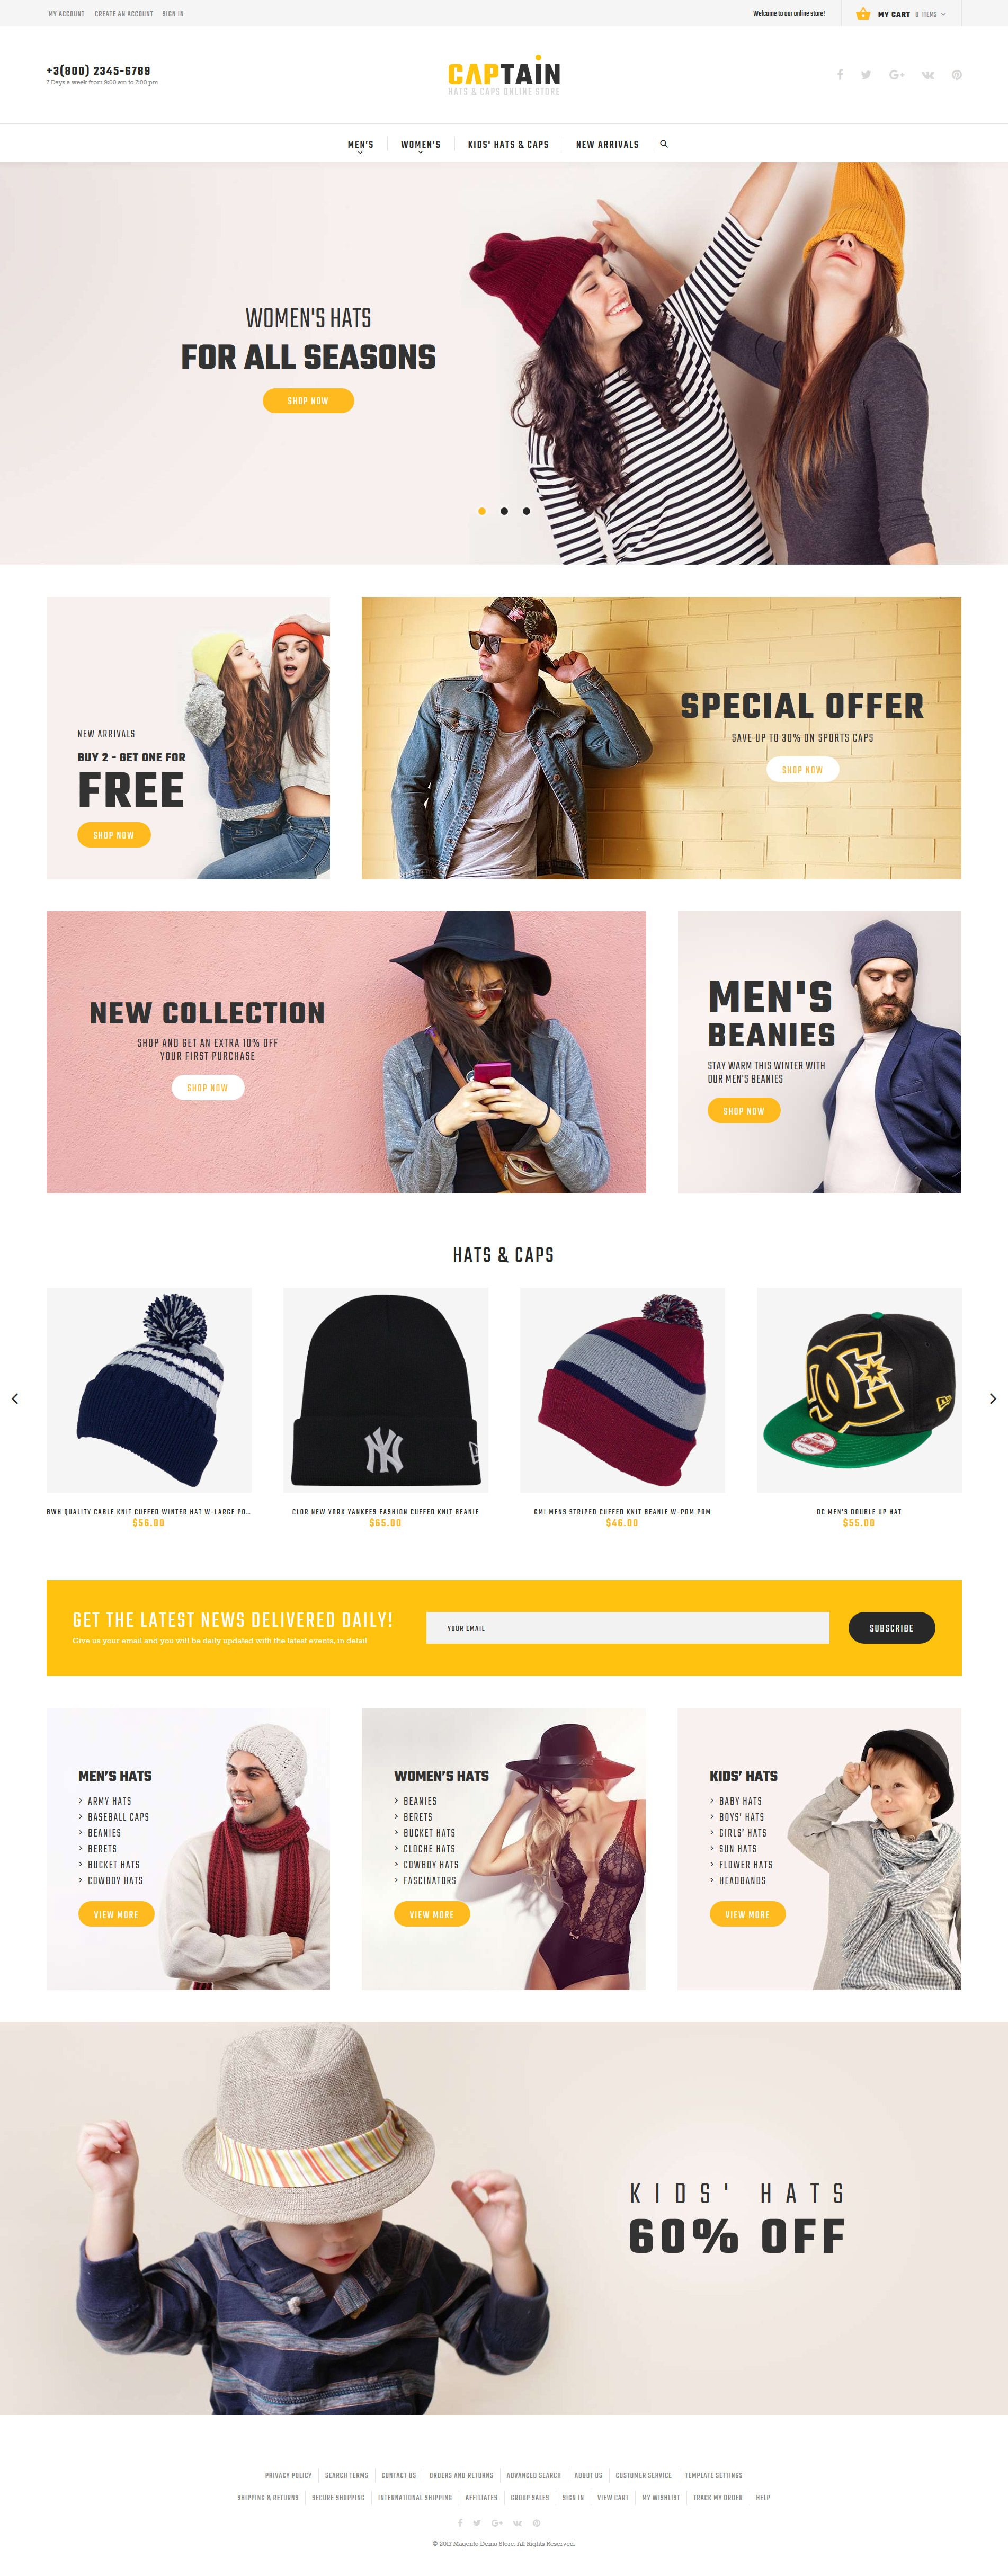 16730026ccd Captain - Hats and Caps Online Store Magento Theme